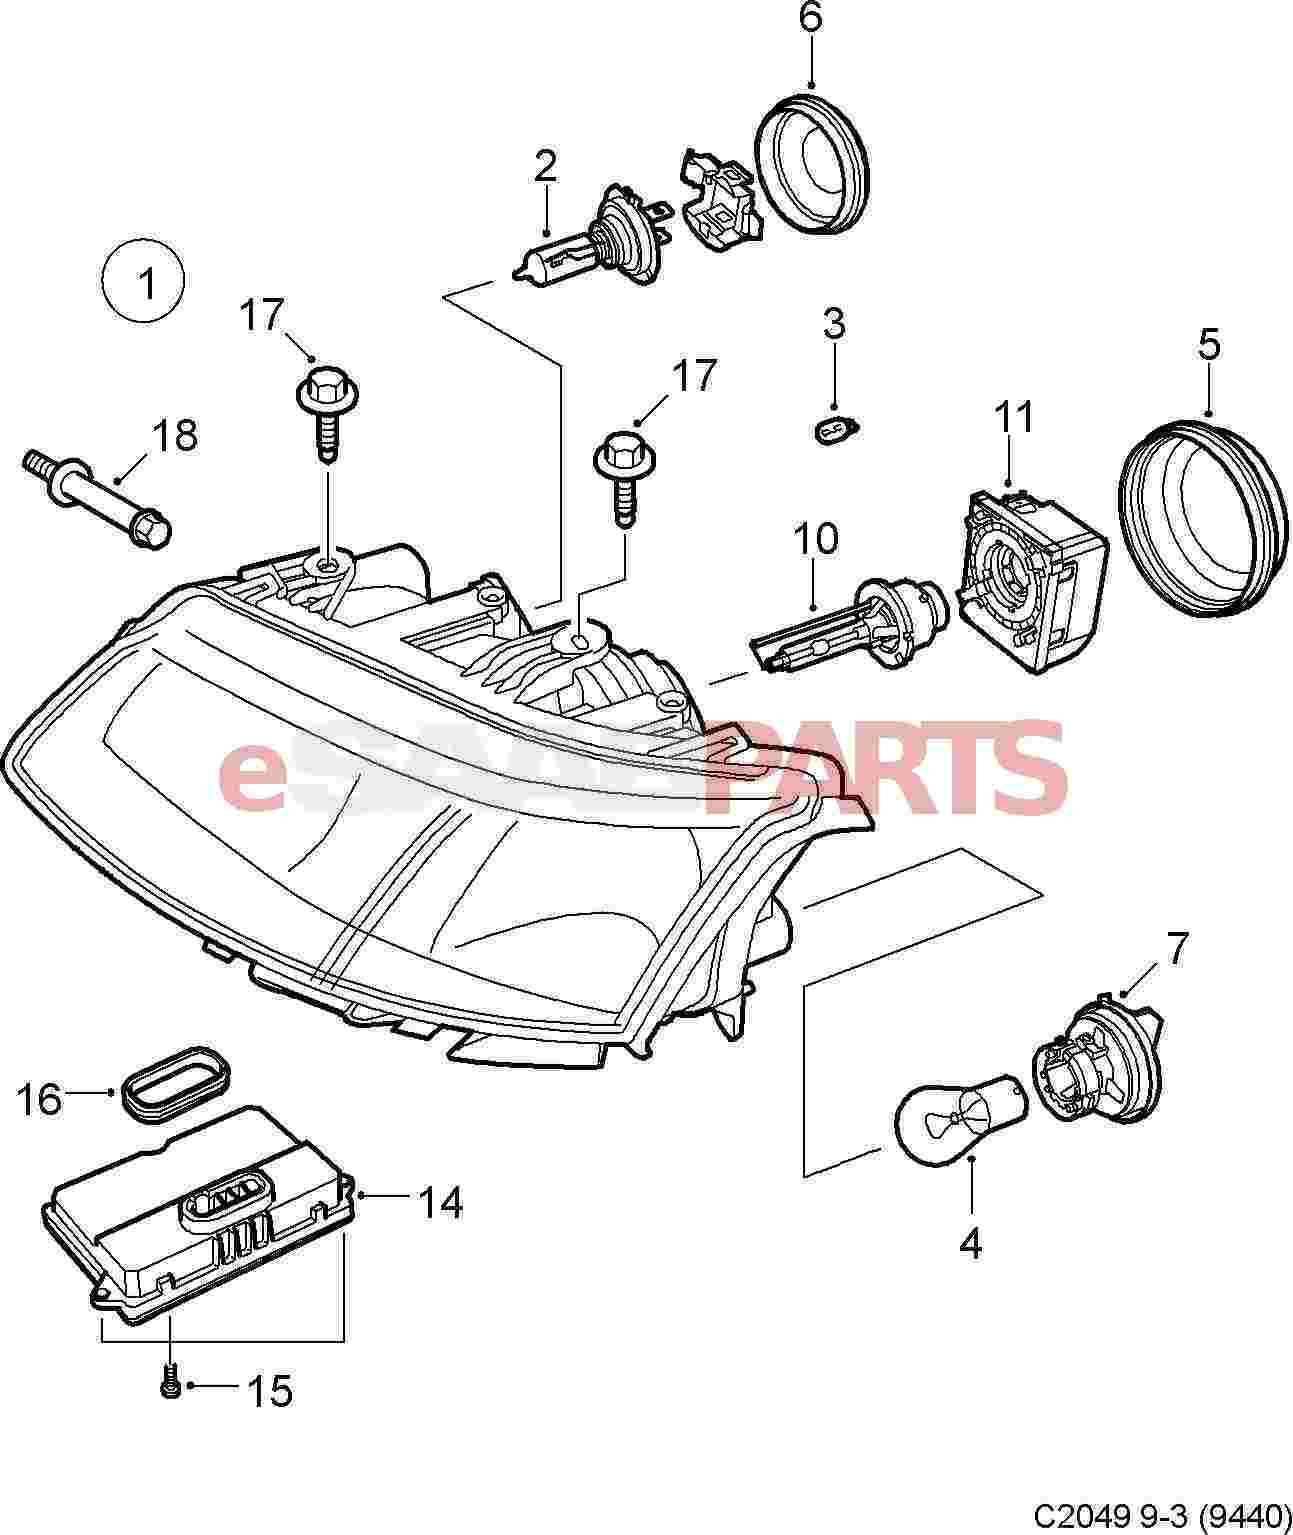 2006 ford escape headlight wiring diagram meyer snow plow e58h further 2003 taurus